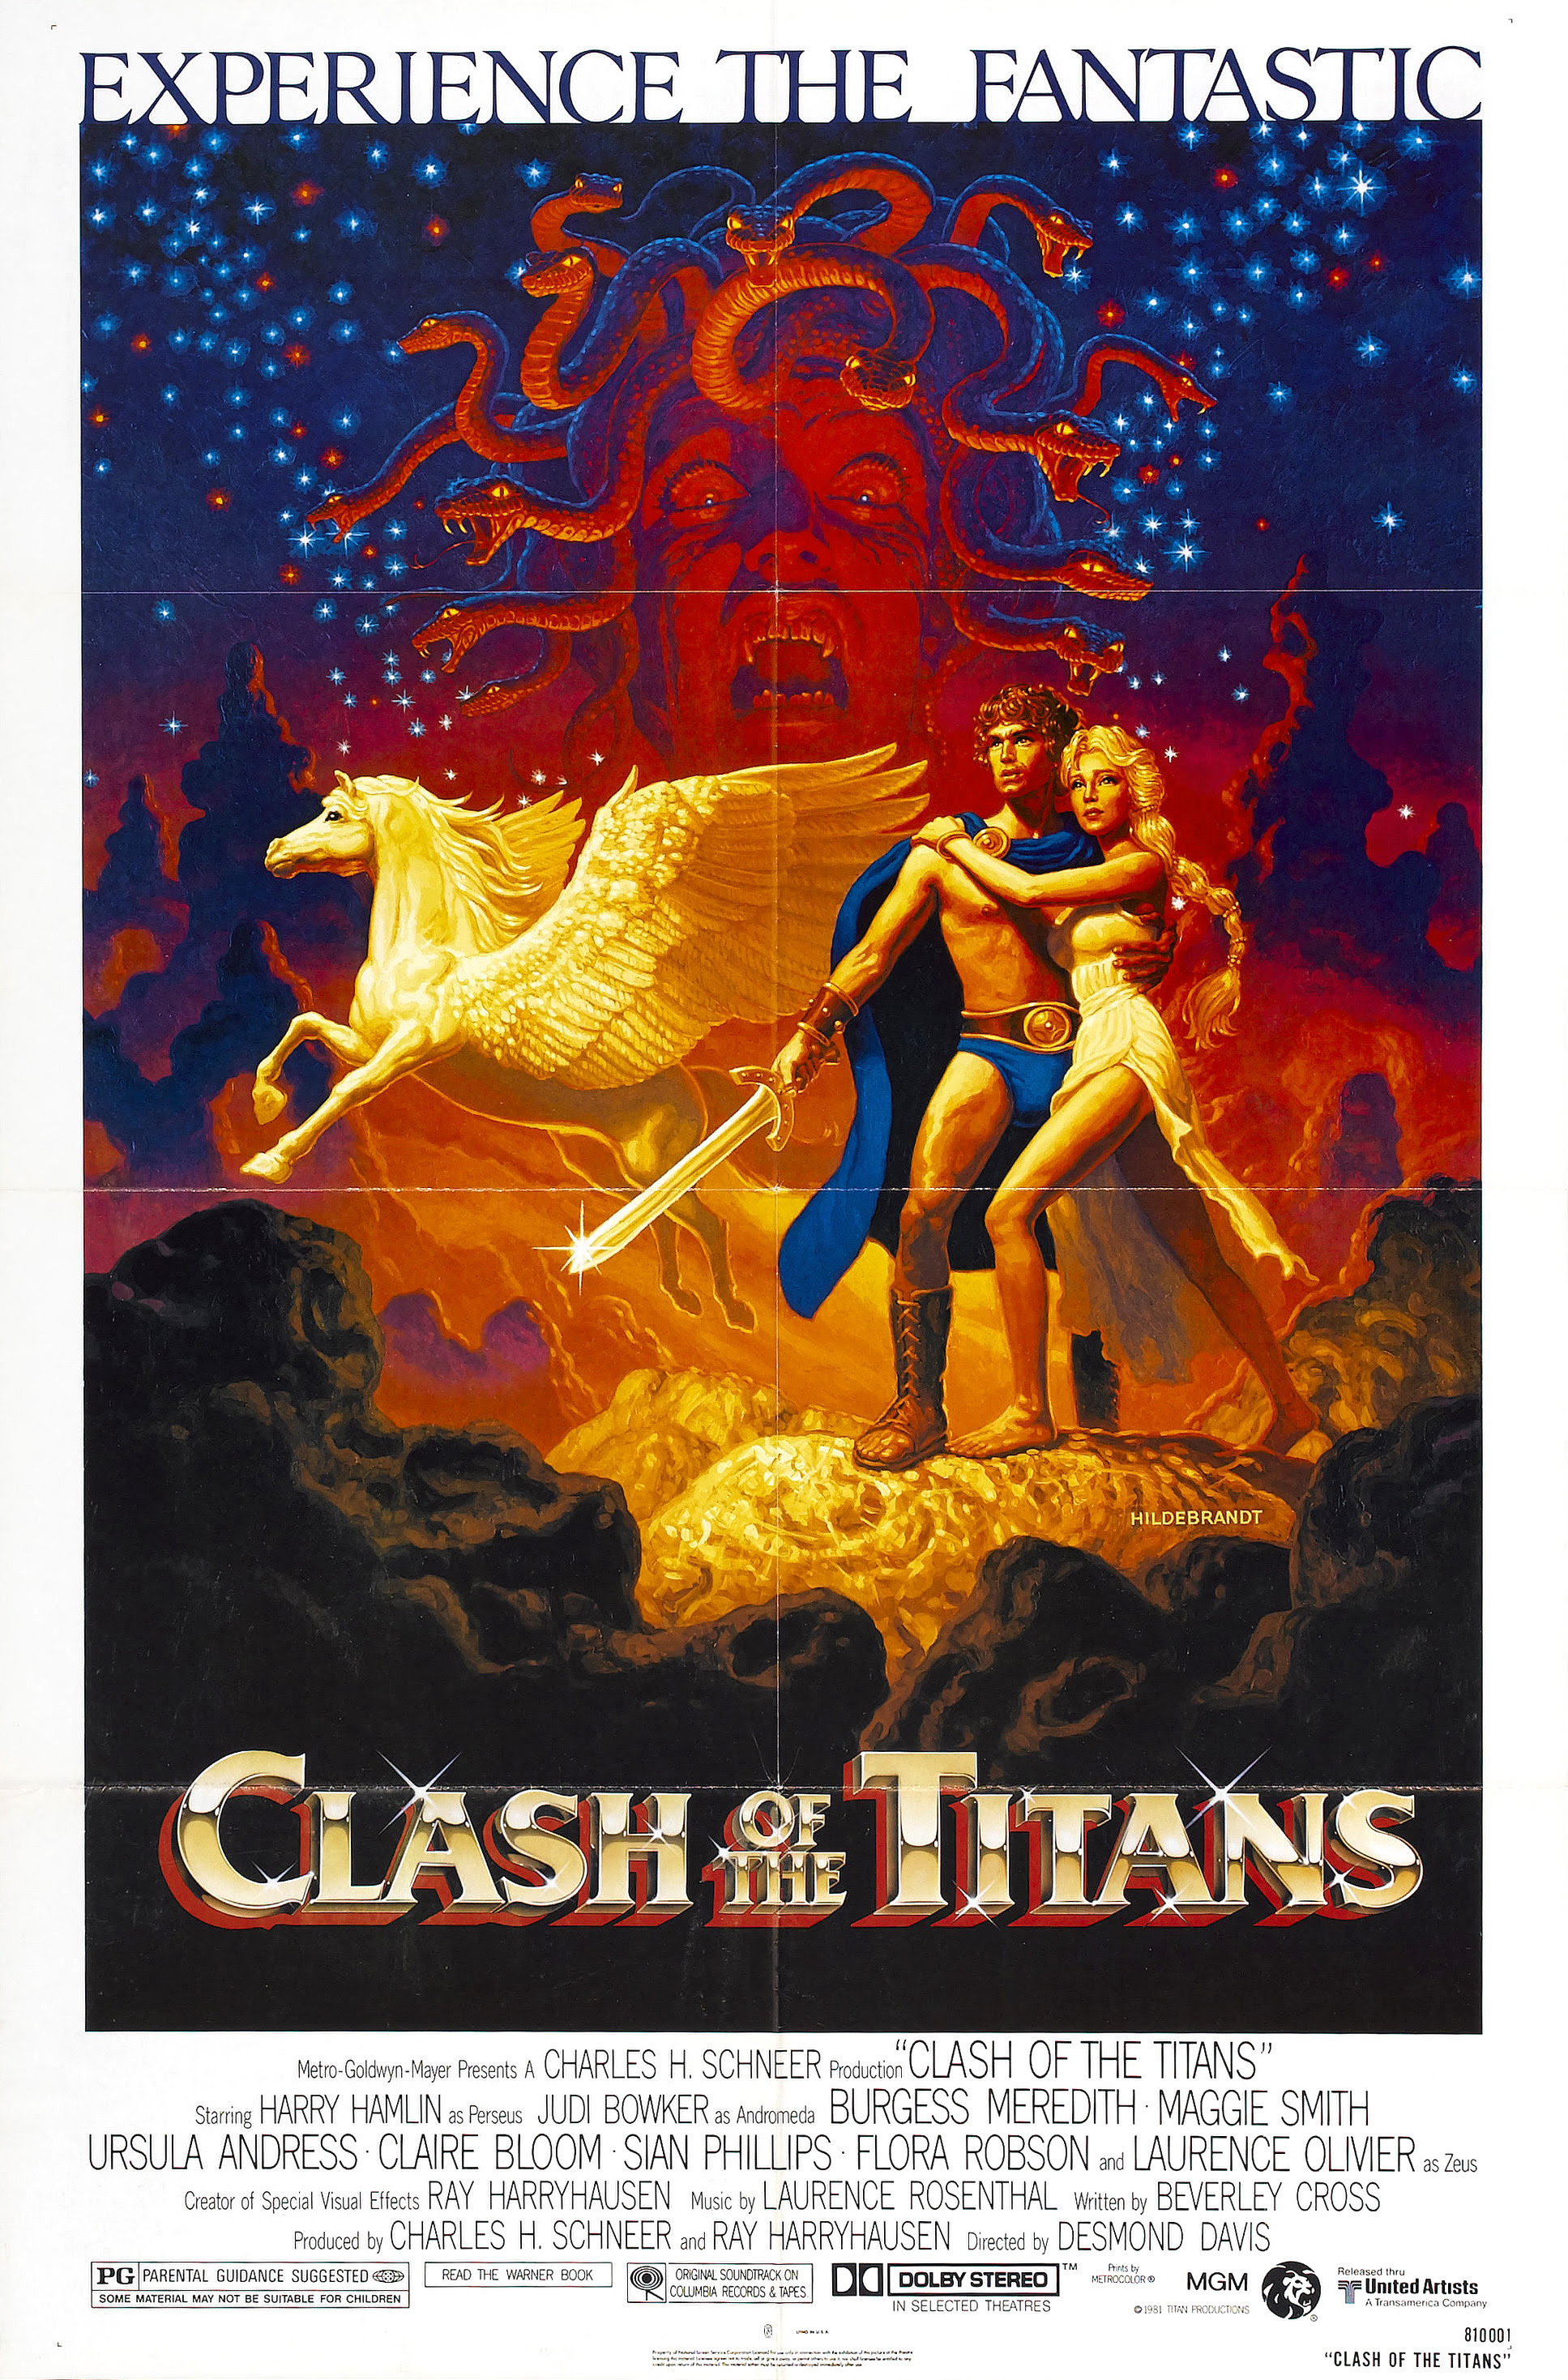 Greg and Tim Hildebrandt - Clash Of The Titans Poster, 1981